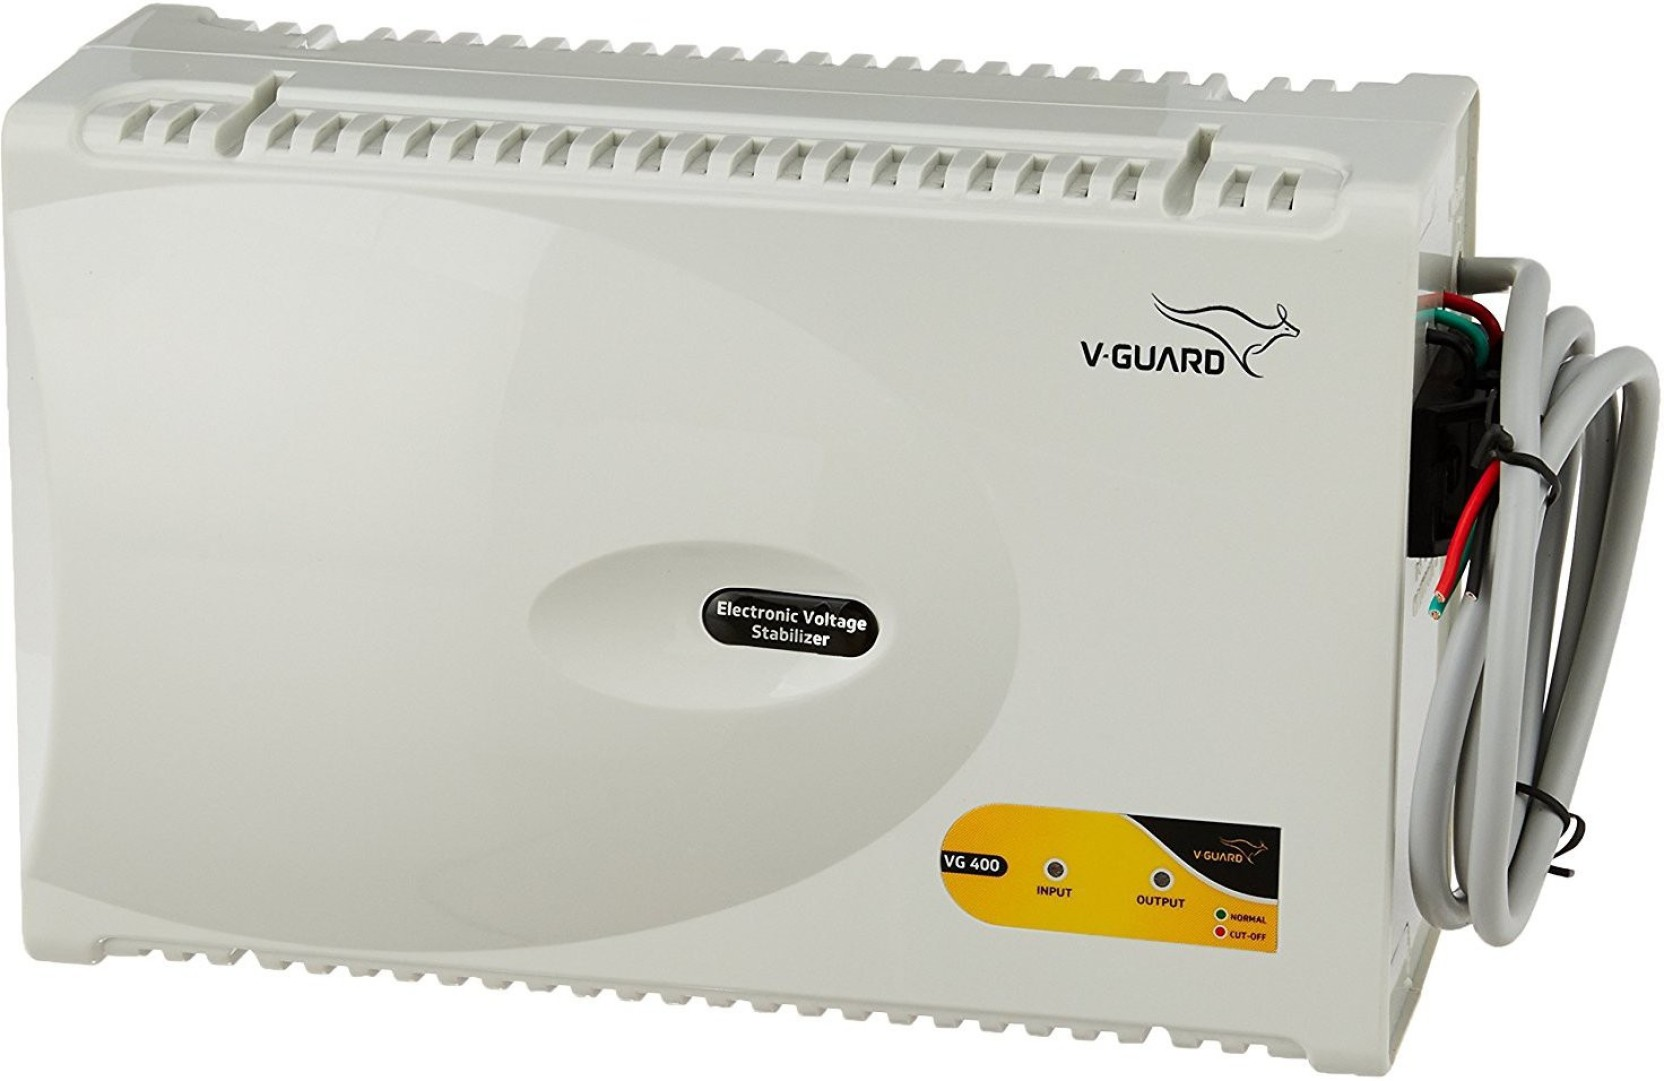 V Guard Inverter Circuit Diagram Wiring Libraries Stabilizer Database Libraryv Library Mos Fet